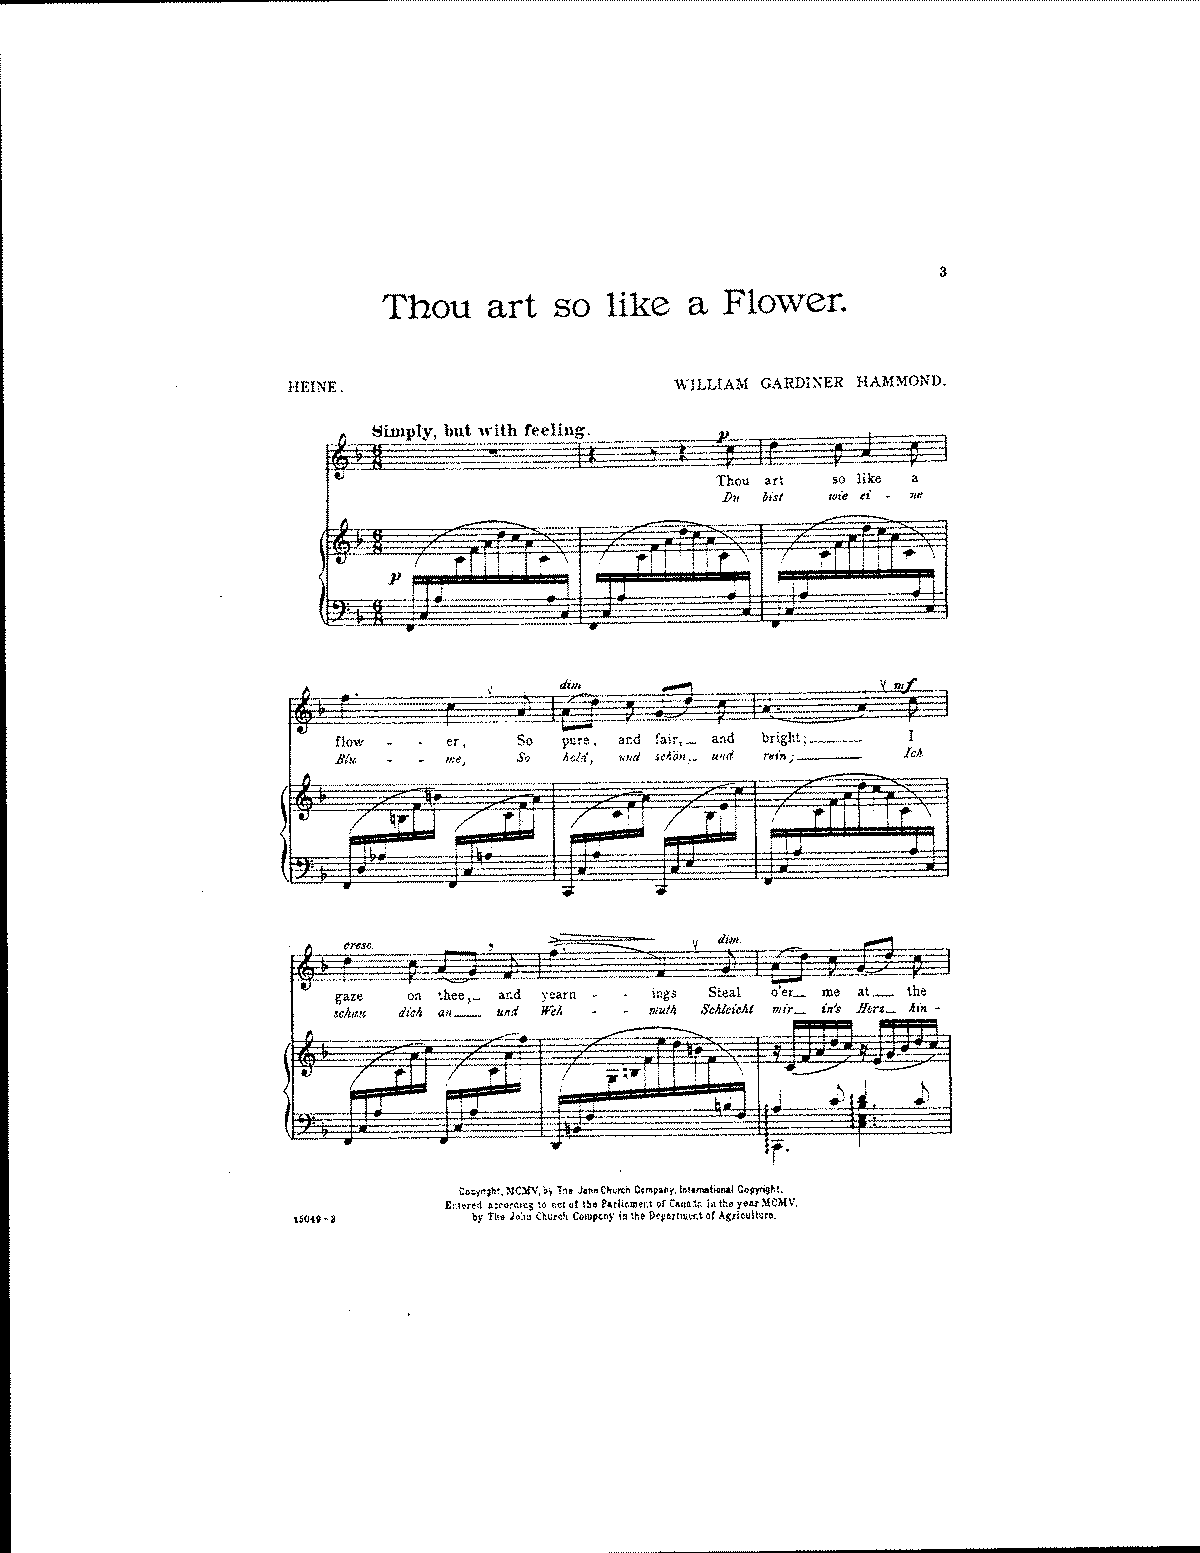 SIBLEY1802.1905.632d-Hammond Thou art so like a flower.pdf